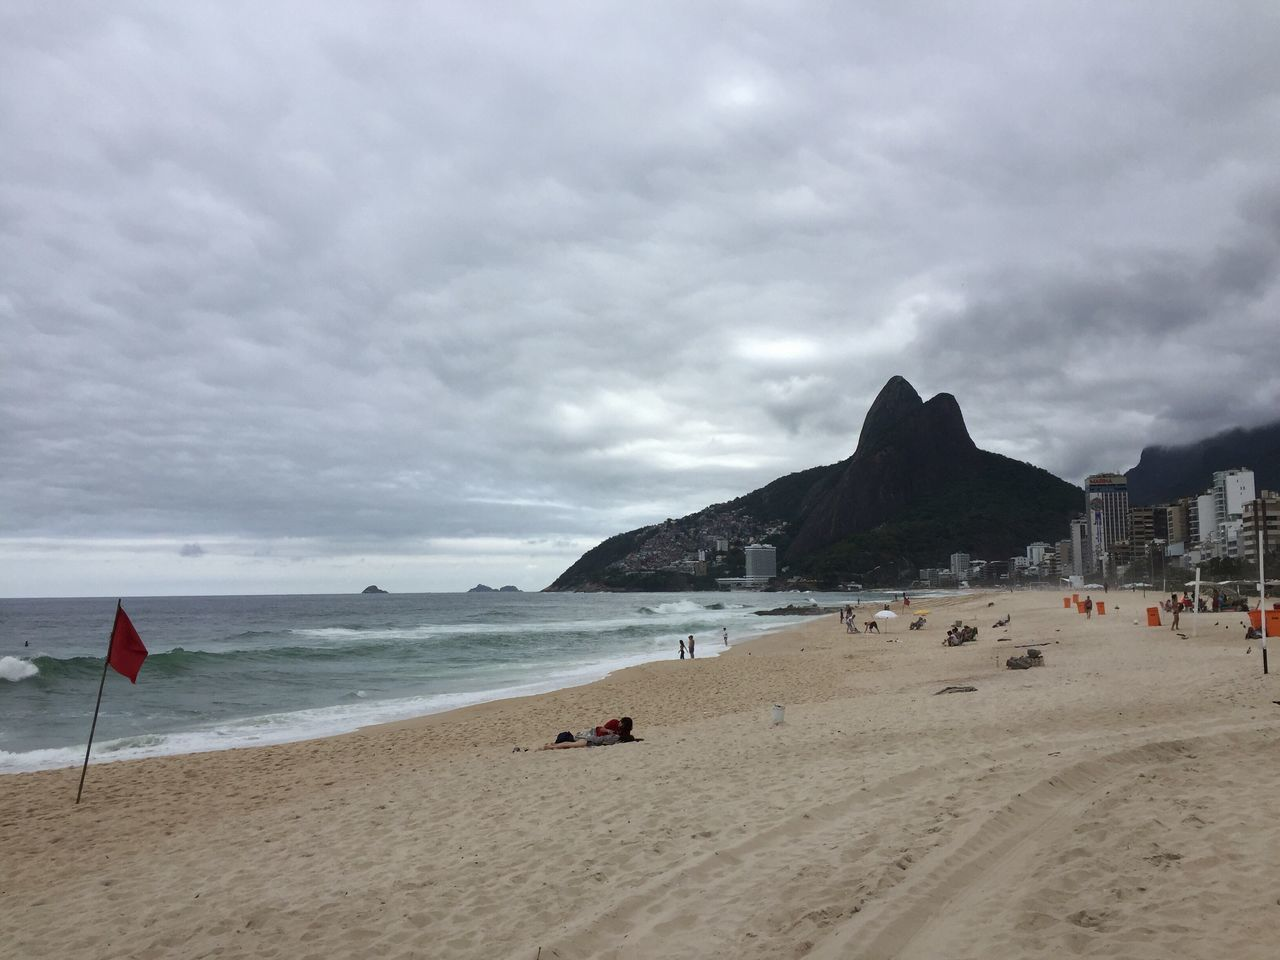 Dois Irmãos Ipanema Beach Rio De Janeiro Brasil ♥ Sea Beach Water Sand Sky Shore Cloud - Sky Nature Horizon Over Water Beauty In Nature Scenics Tranquility Outdoors Coastline Tranquil Scene Day (taked in nov/16/2016) What Who Where